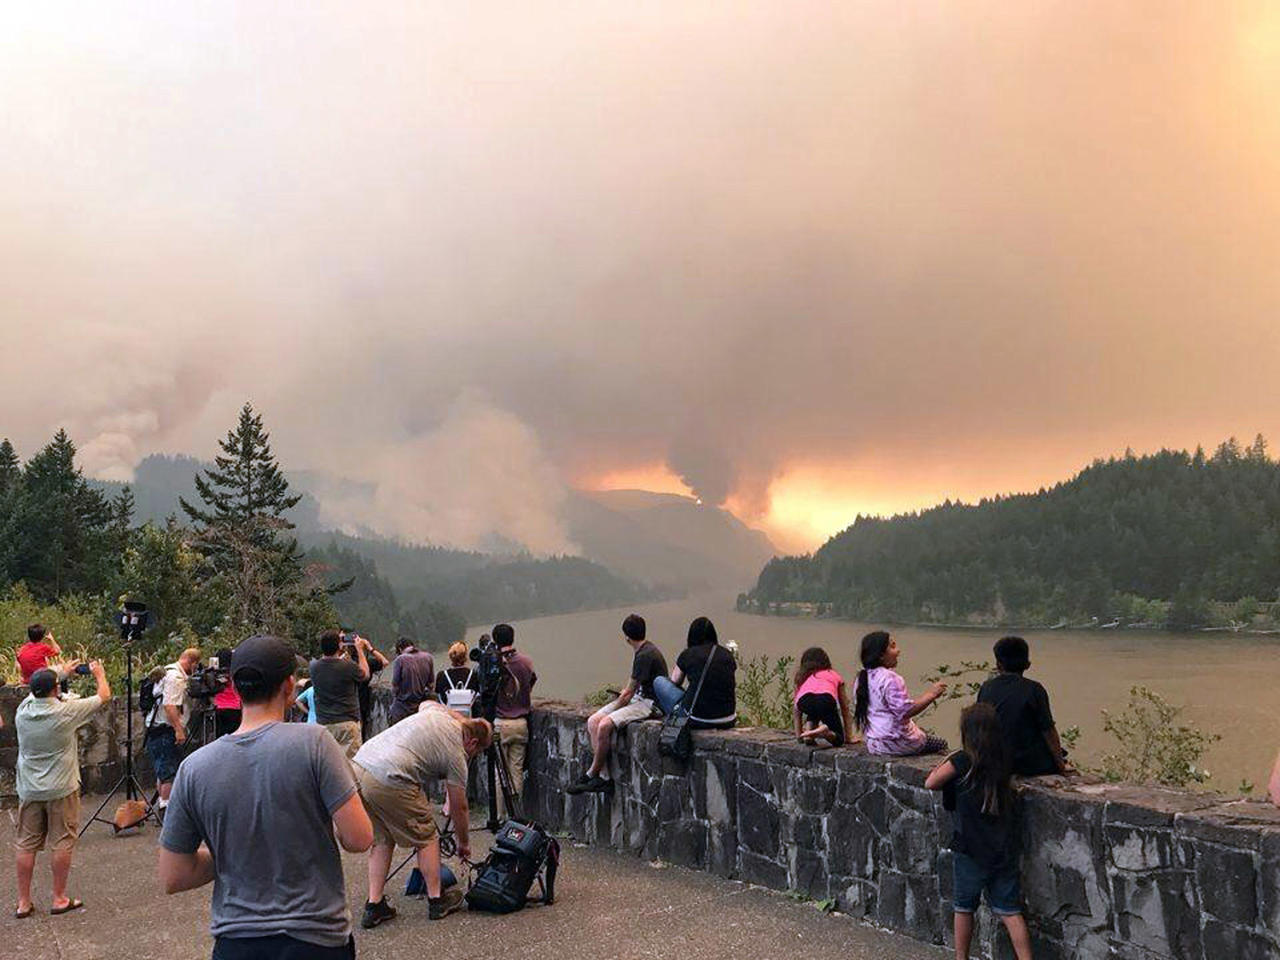 <p>People at a viewpoint overlooking the Columbia River watching the Eagle Creek wildfire burning in the Columbia River Gorge east of Portland, Ore., Sept. 4, 2017. (Inciweb via AP) </p>